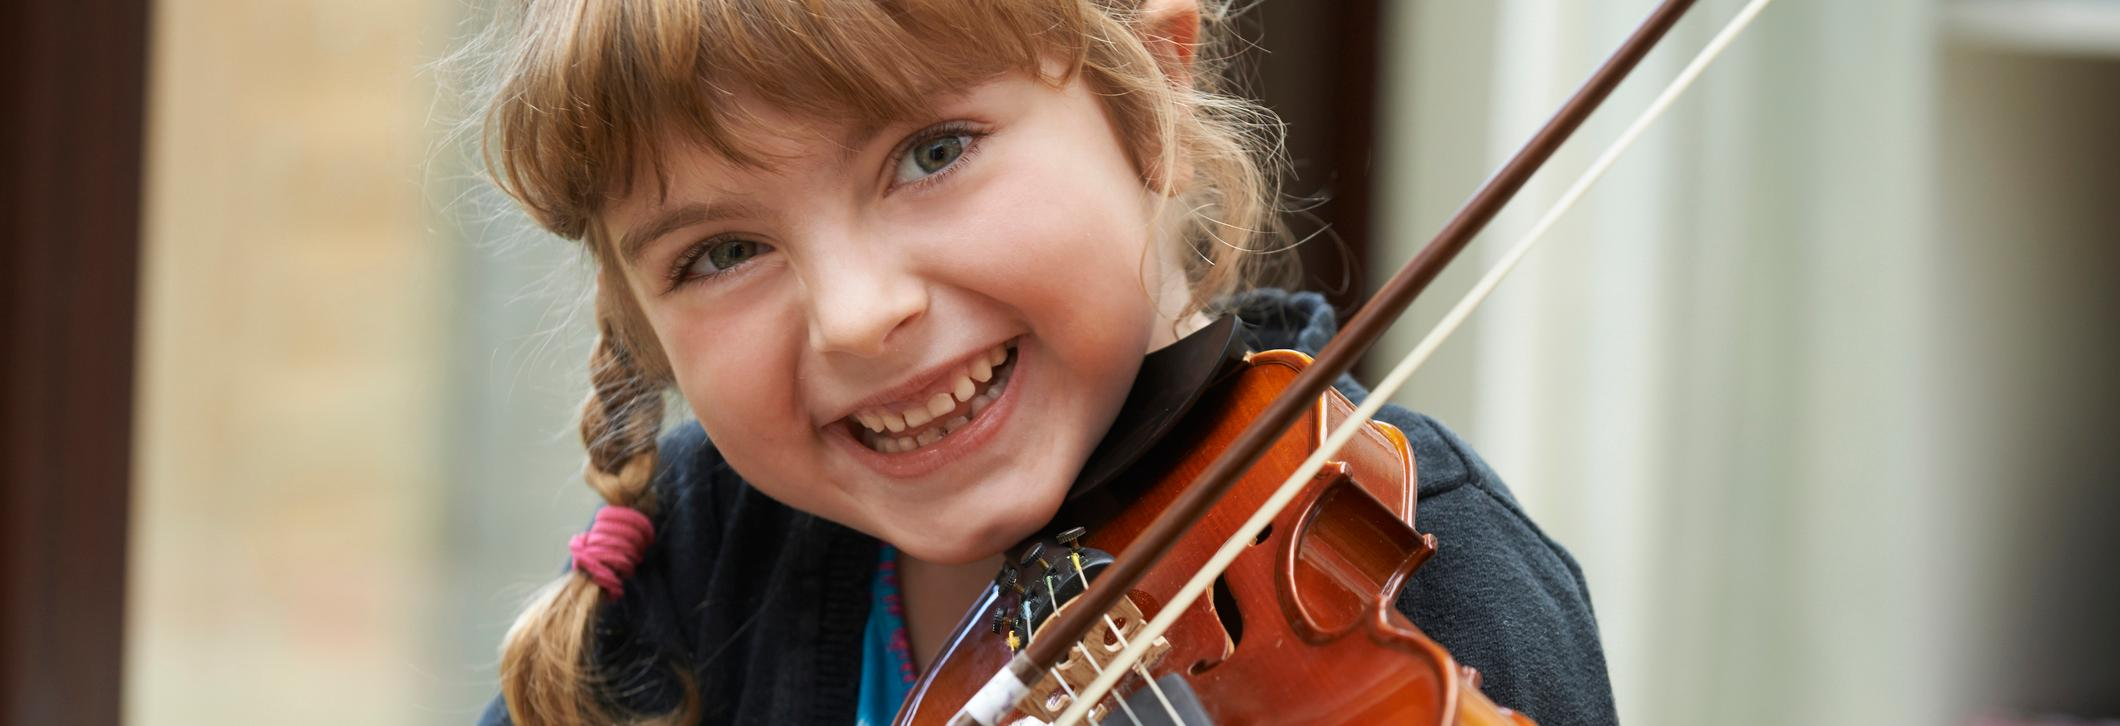 west chester academy of music and dance violin classes cincinnati ohio